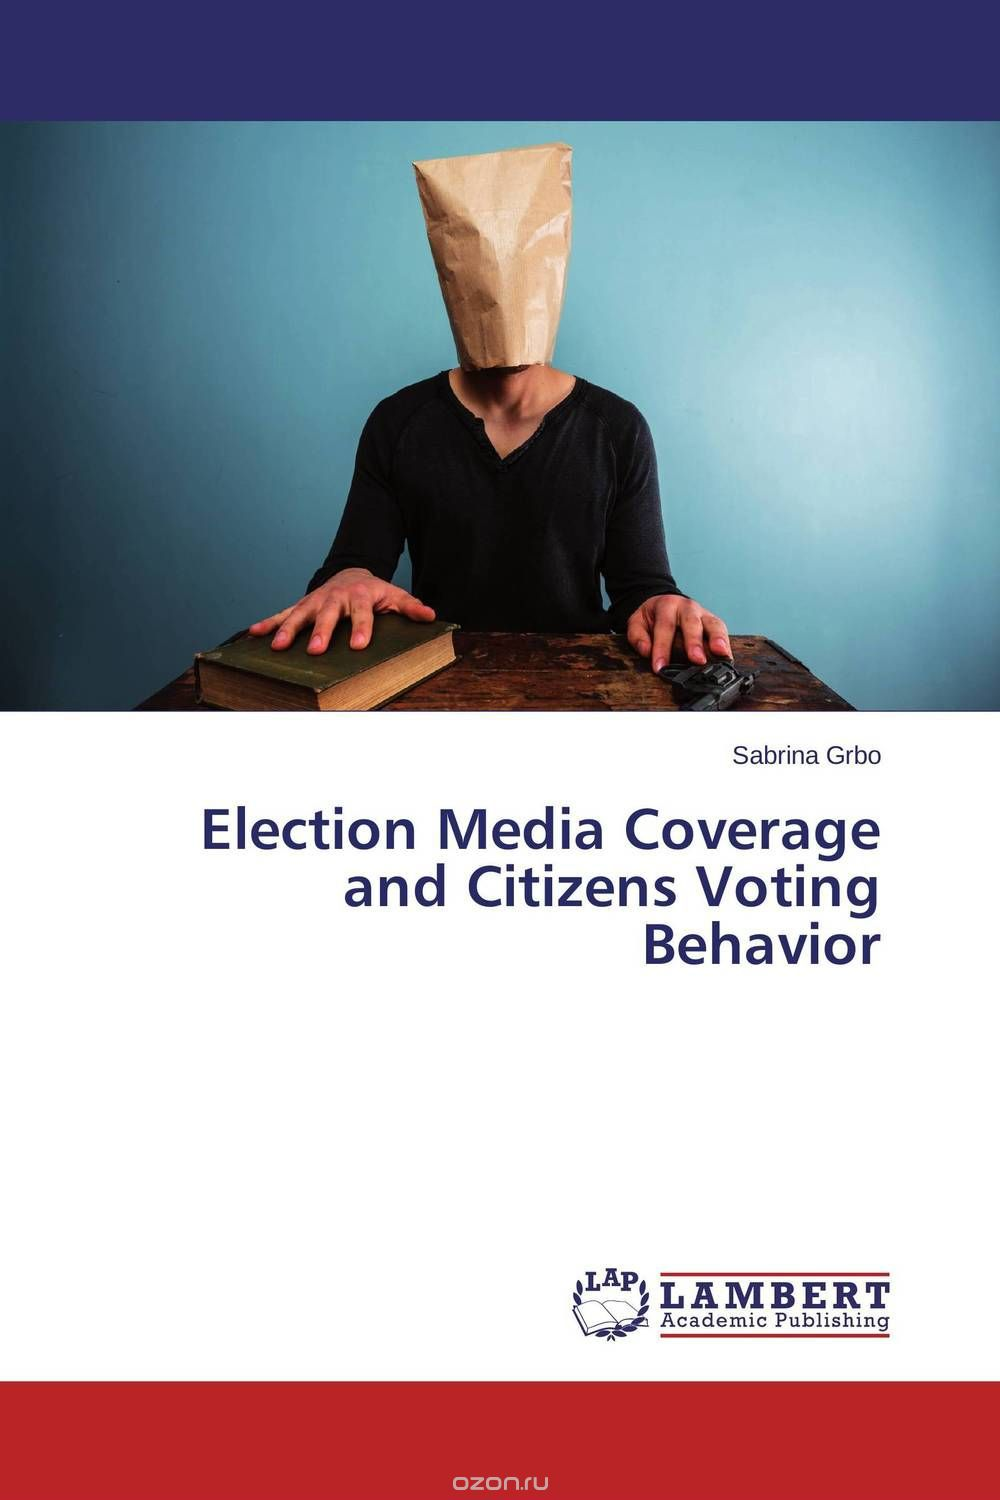 Election Media Coverage and Citizens Voting Behavior